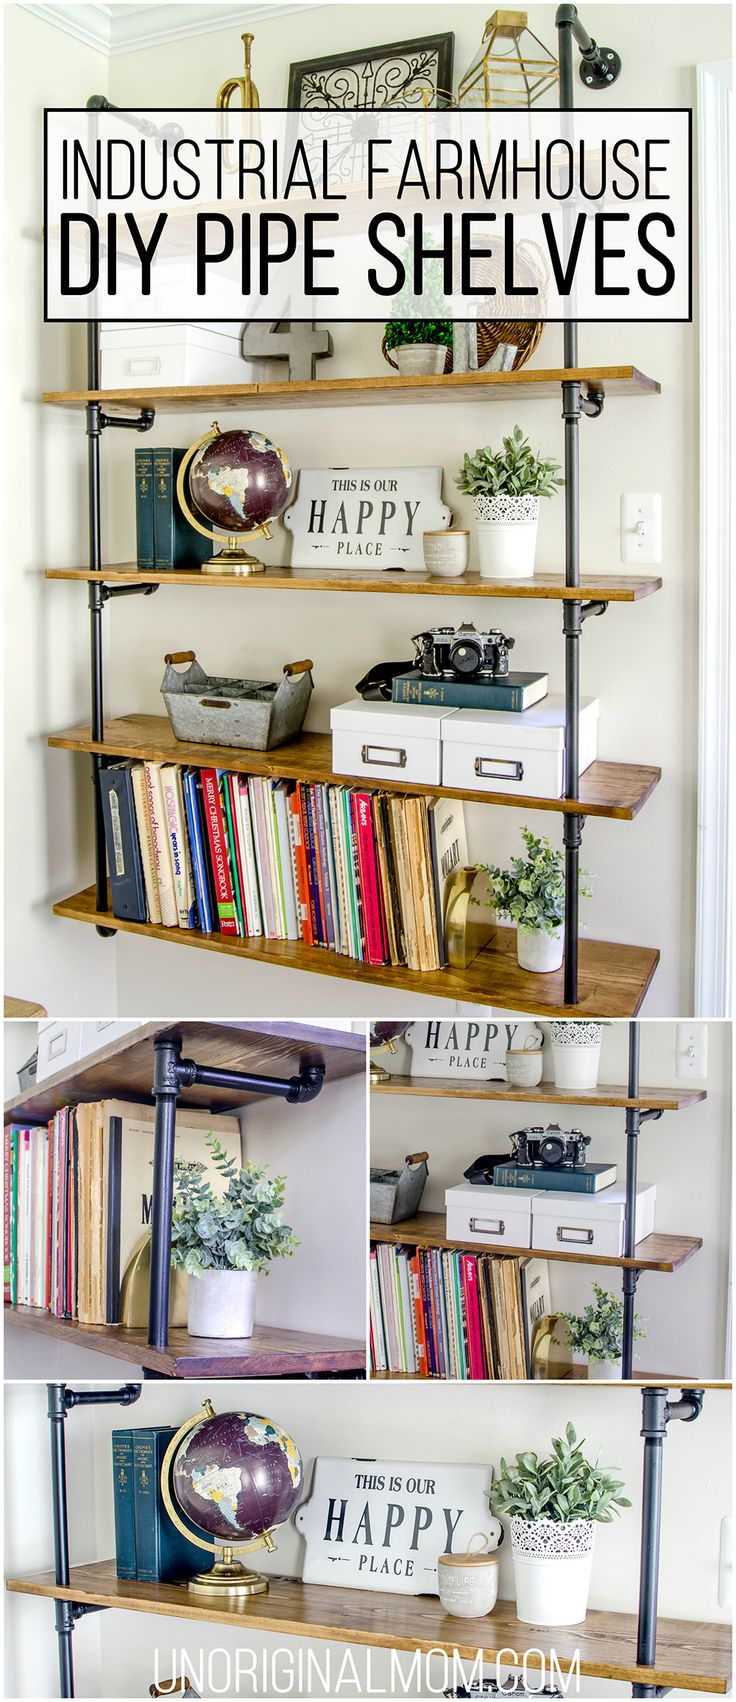 17 Best Ideas About Pipe Shelves On Pinterest Diy Pipe